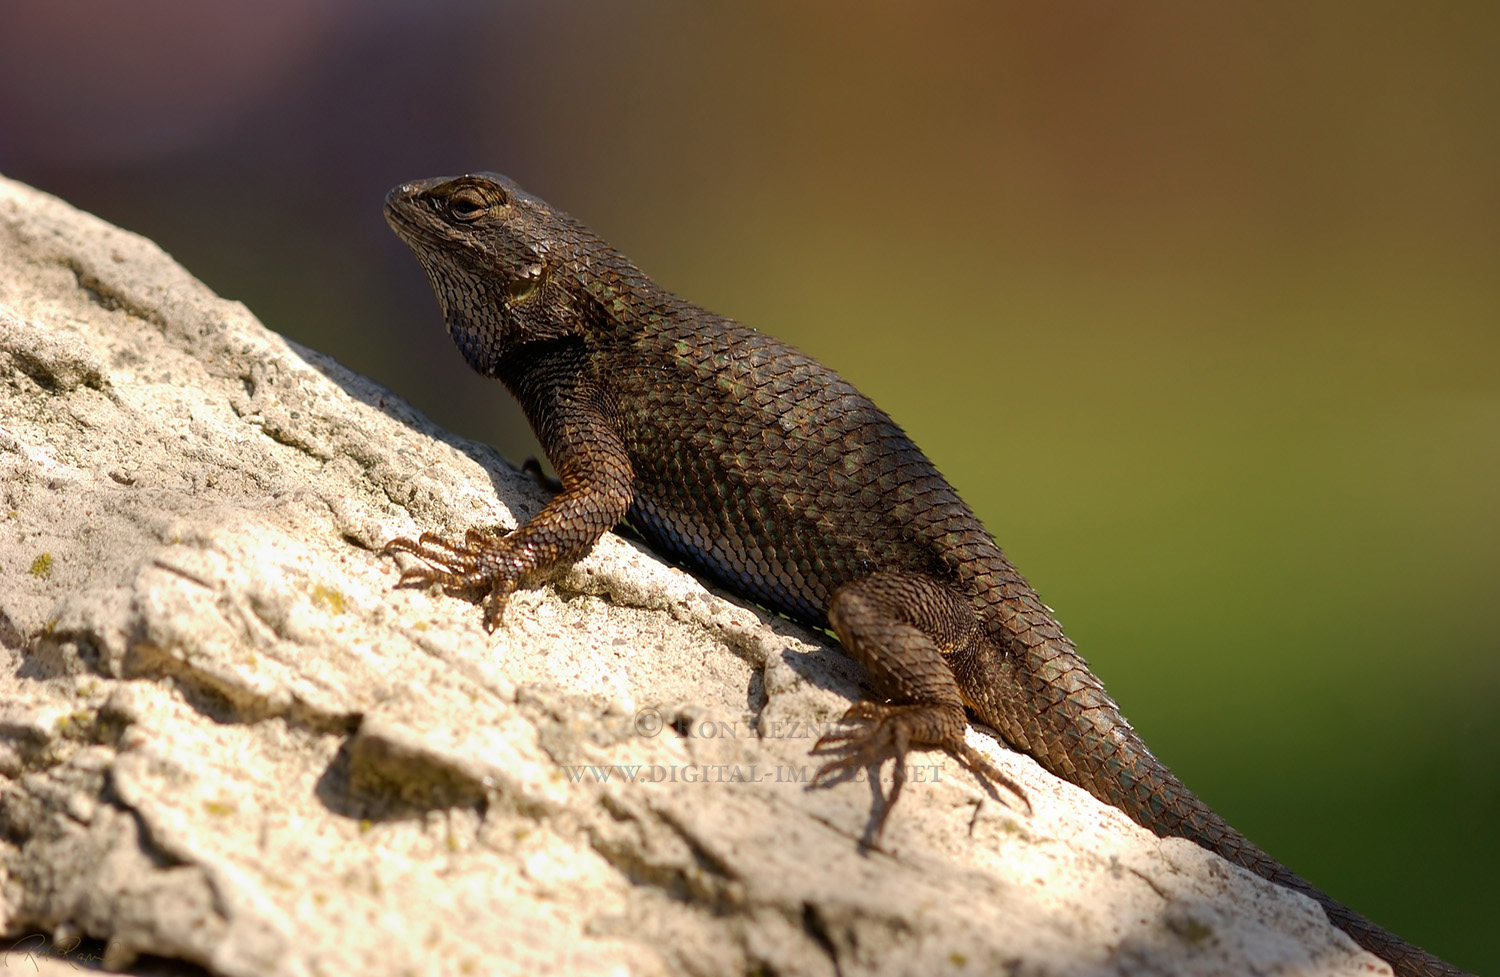 how to catch a blue belly lizard